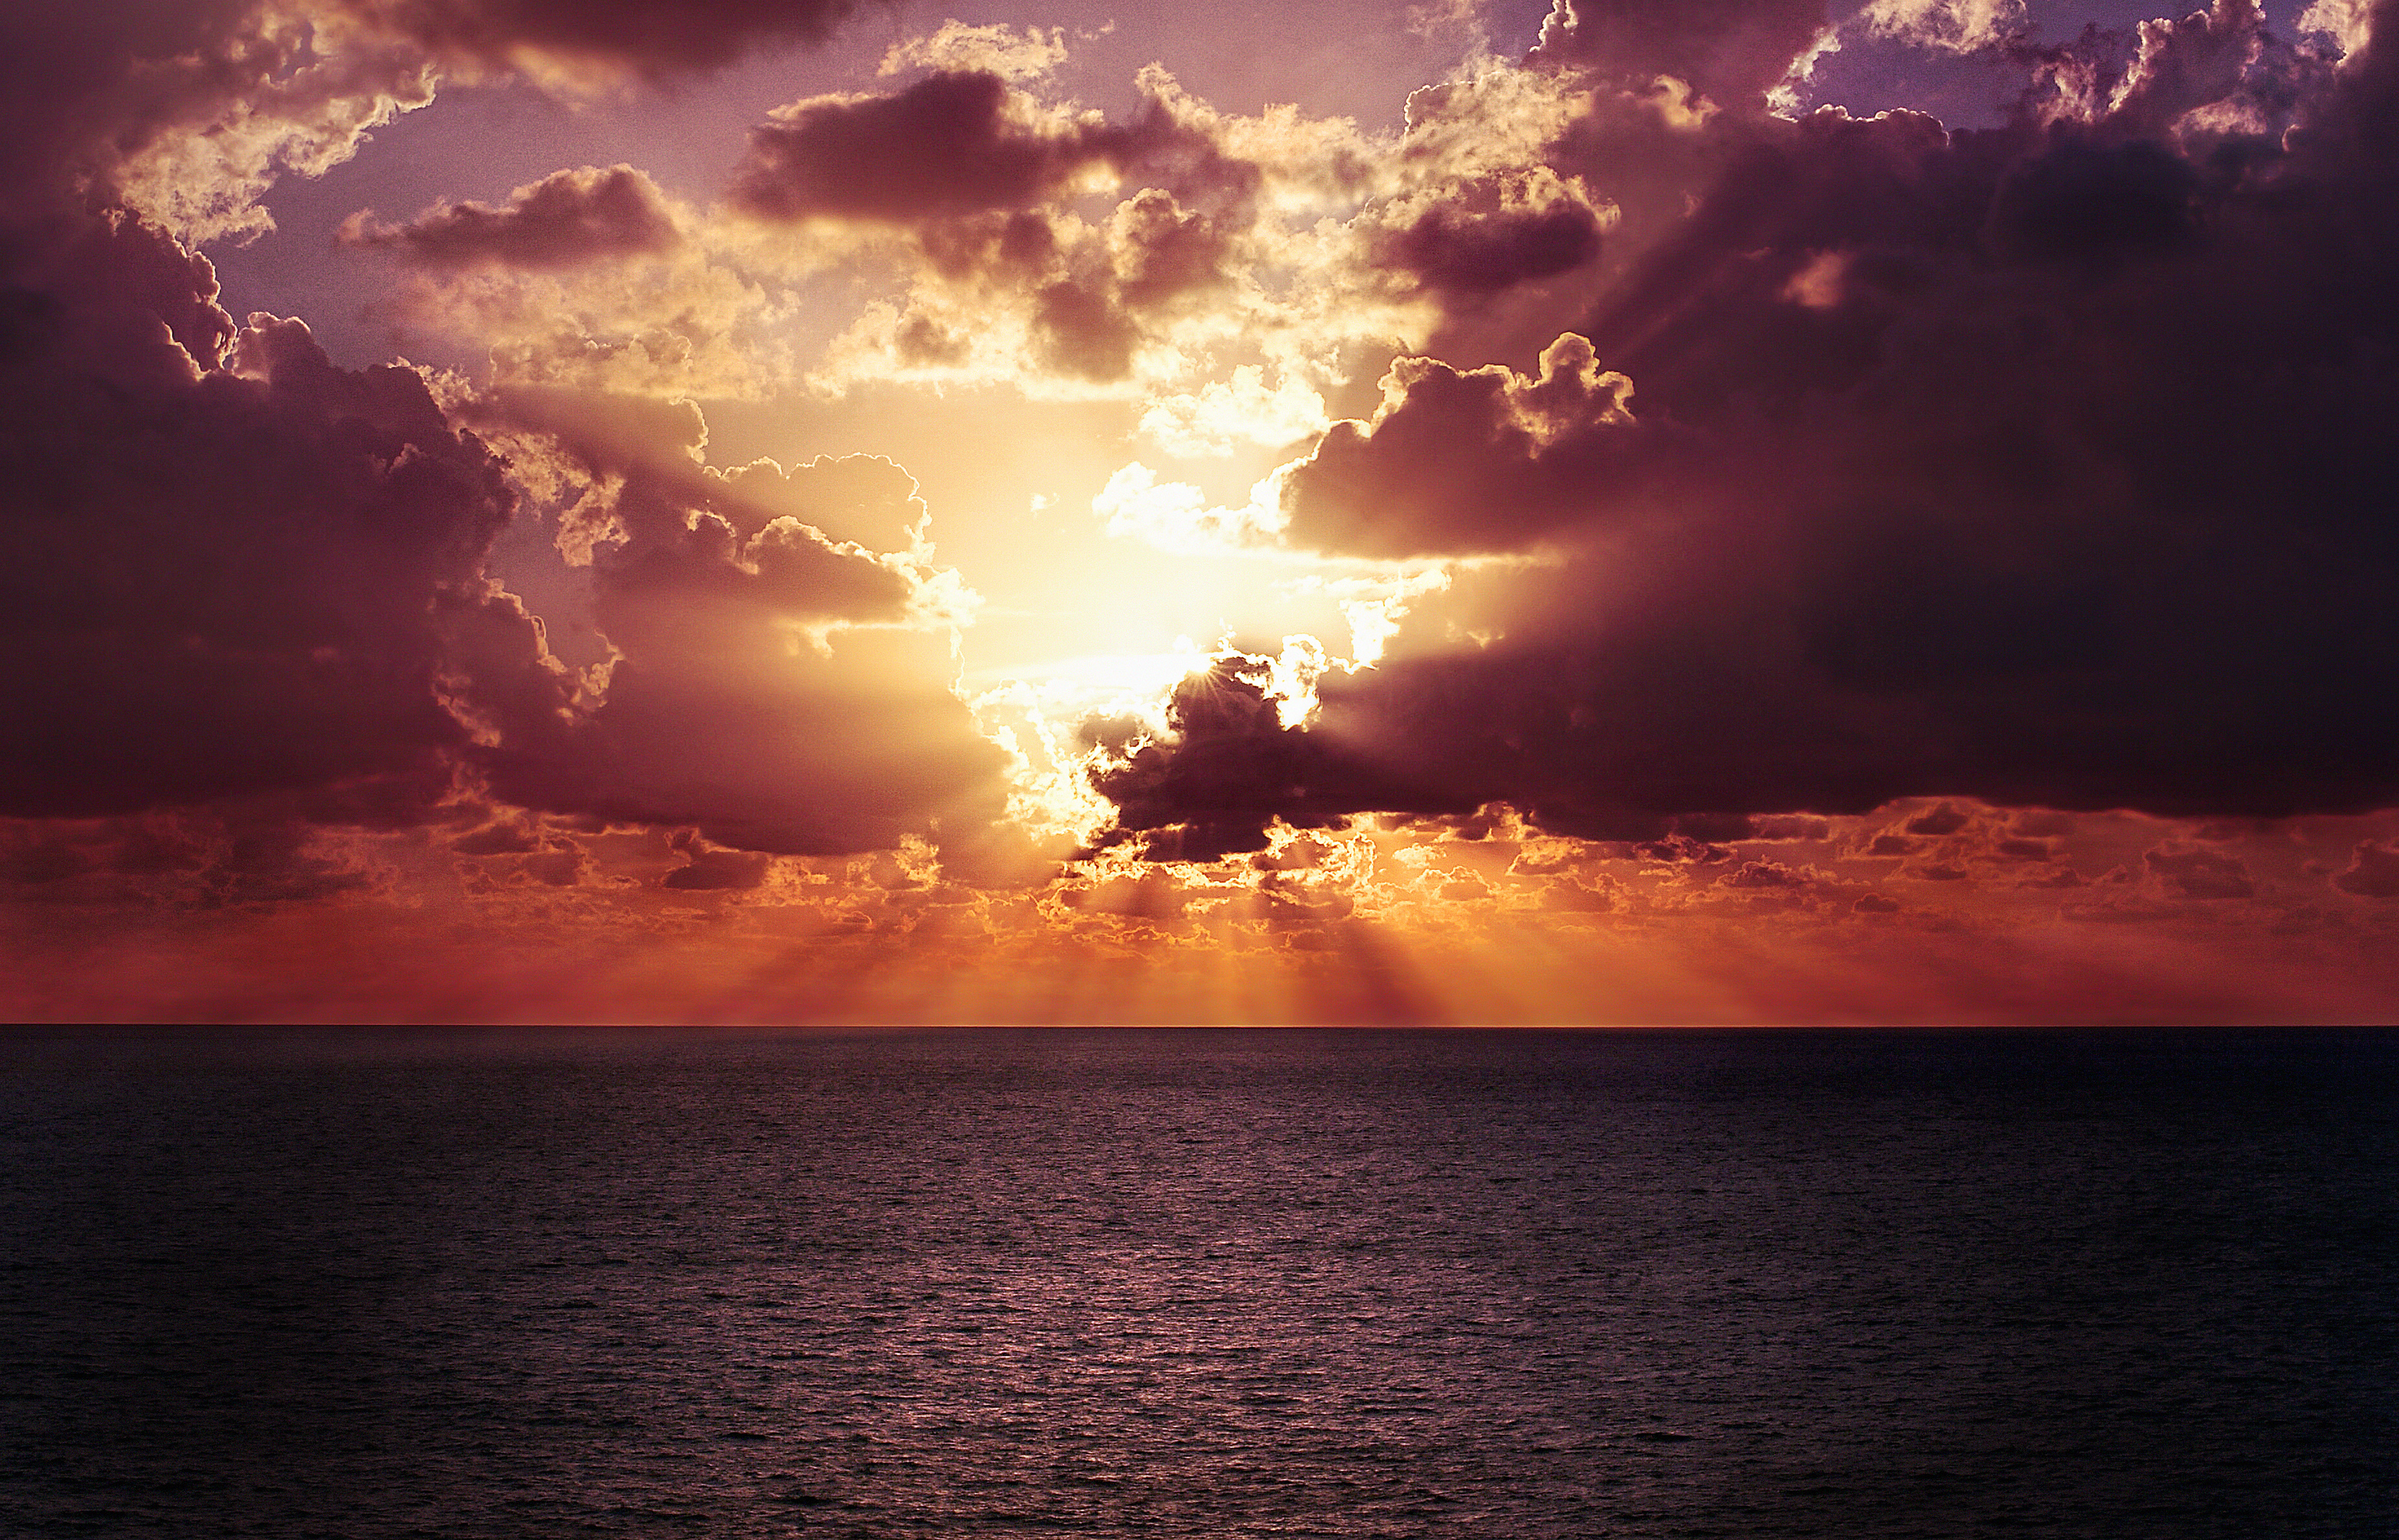 Incredible sunset, sea, ocean, clouds, dusk, sunbeams, sun rays, clouds, cloudy, horizon, ocean, sea, water